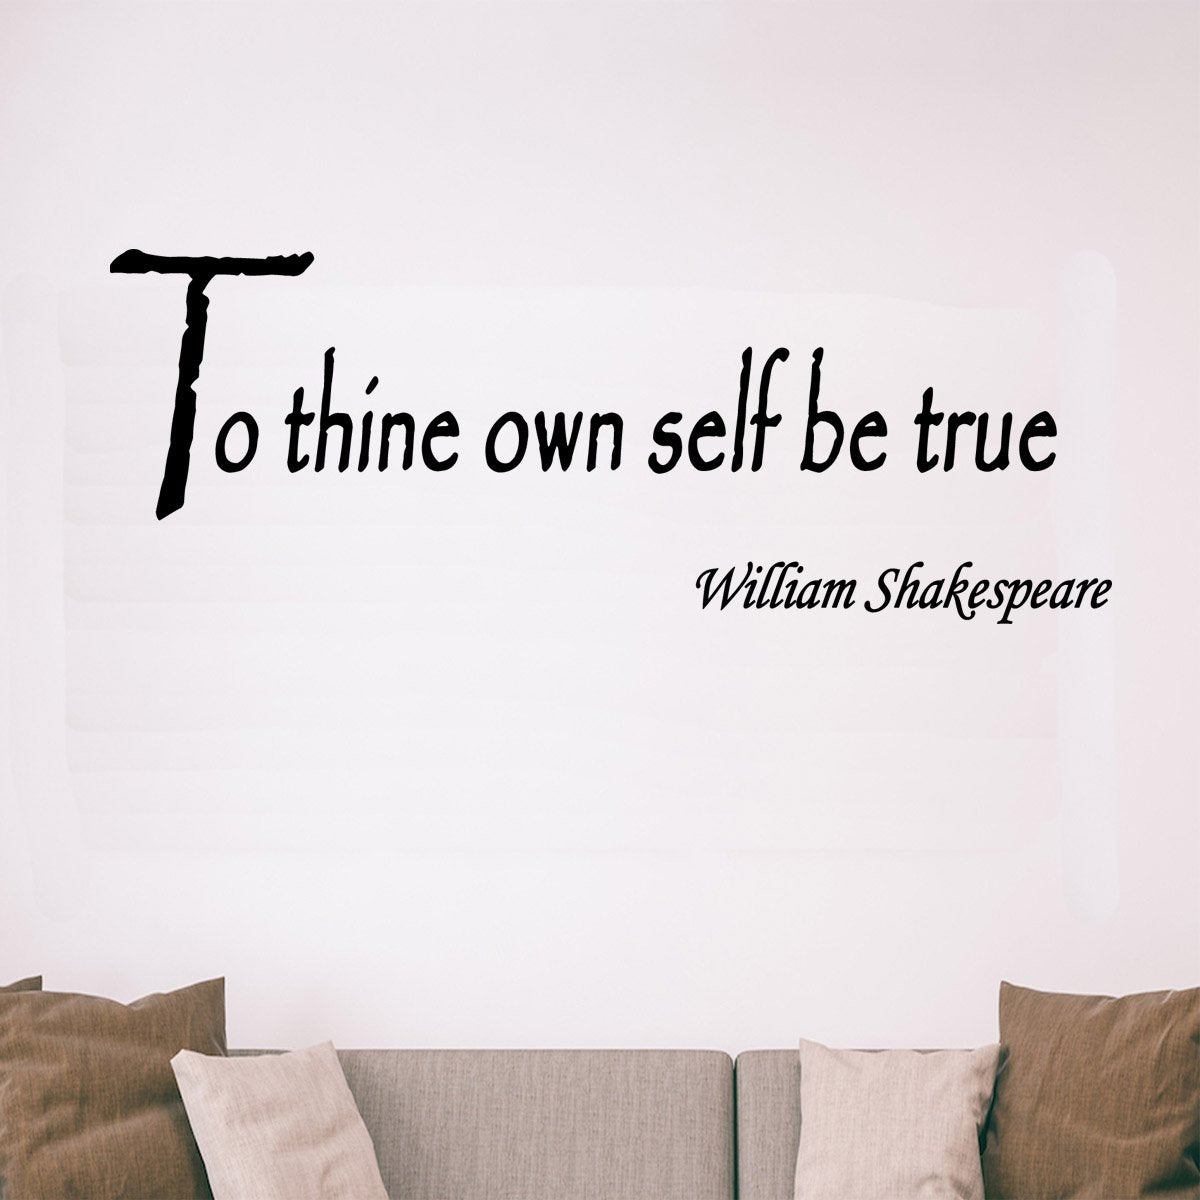 VWAQ To Thine Own Self Be True, William Shakespeare Vinyl Wall Decal - VWAQ Vinyl Wall Art Quotes and Prints